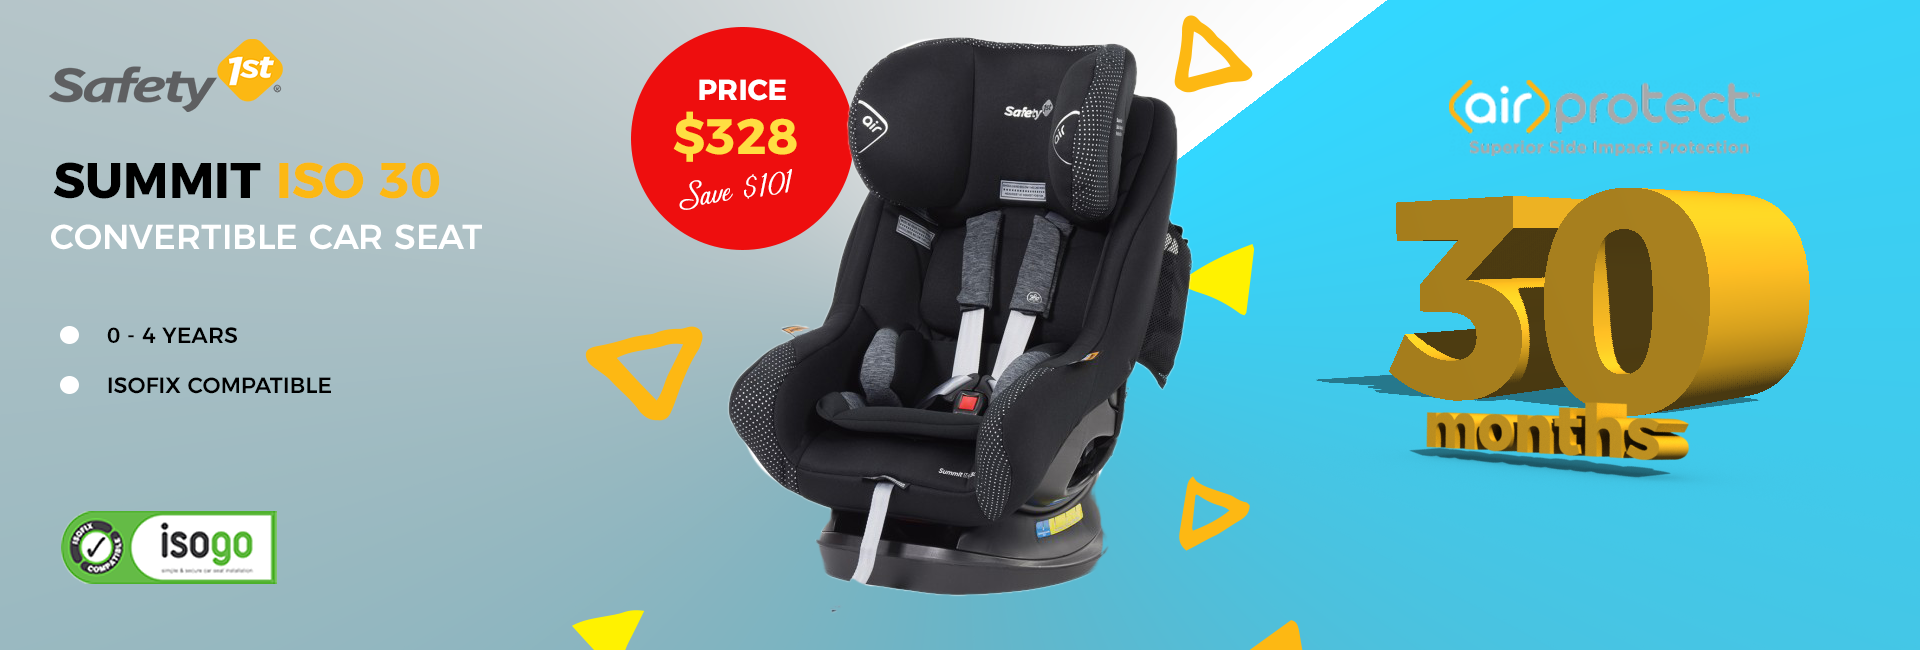 The Safety 1st Summit ISO 30 Convertible car seat features extended rearward facing up to 30 months or until the child's shoulders reach the upper height marker.